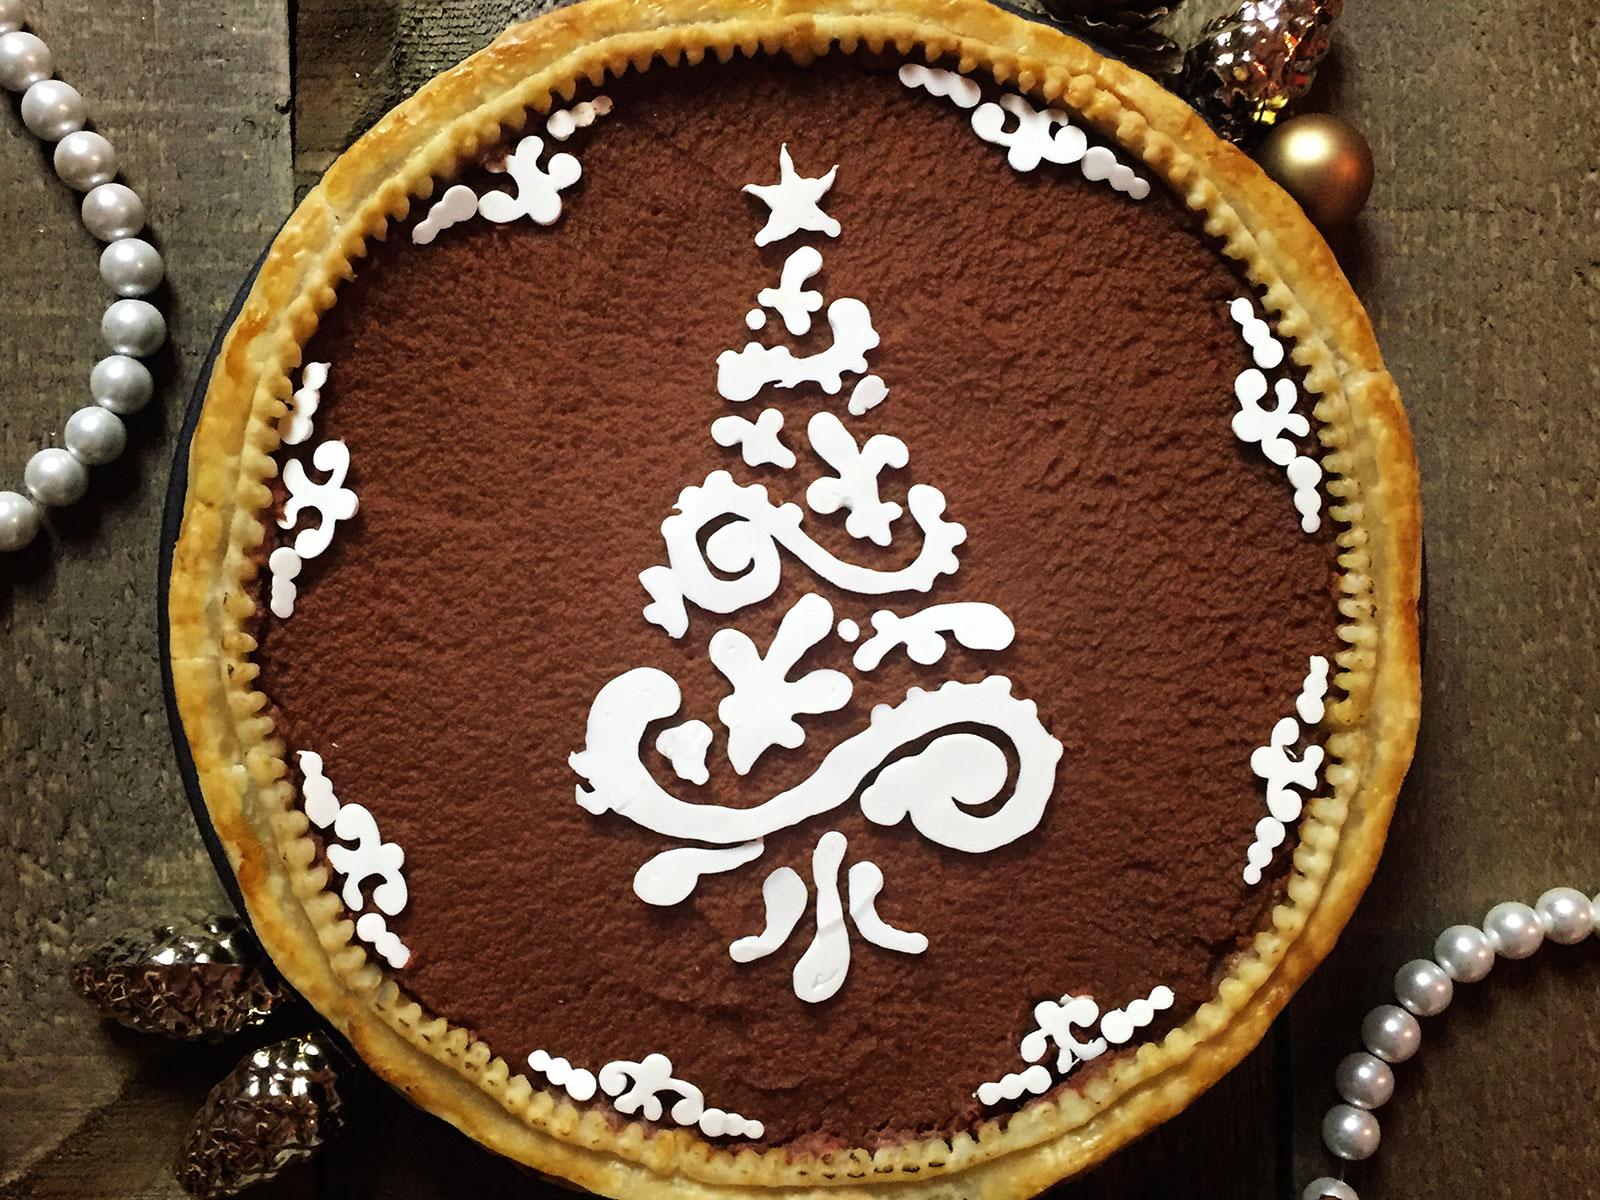 This Artist's '12 Days of Crustmas' Series Celebrates Christmas With Pie